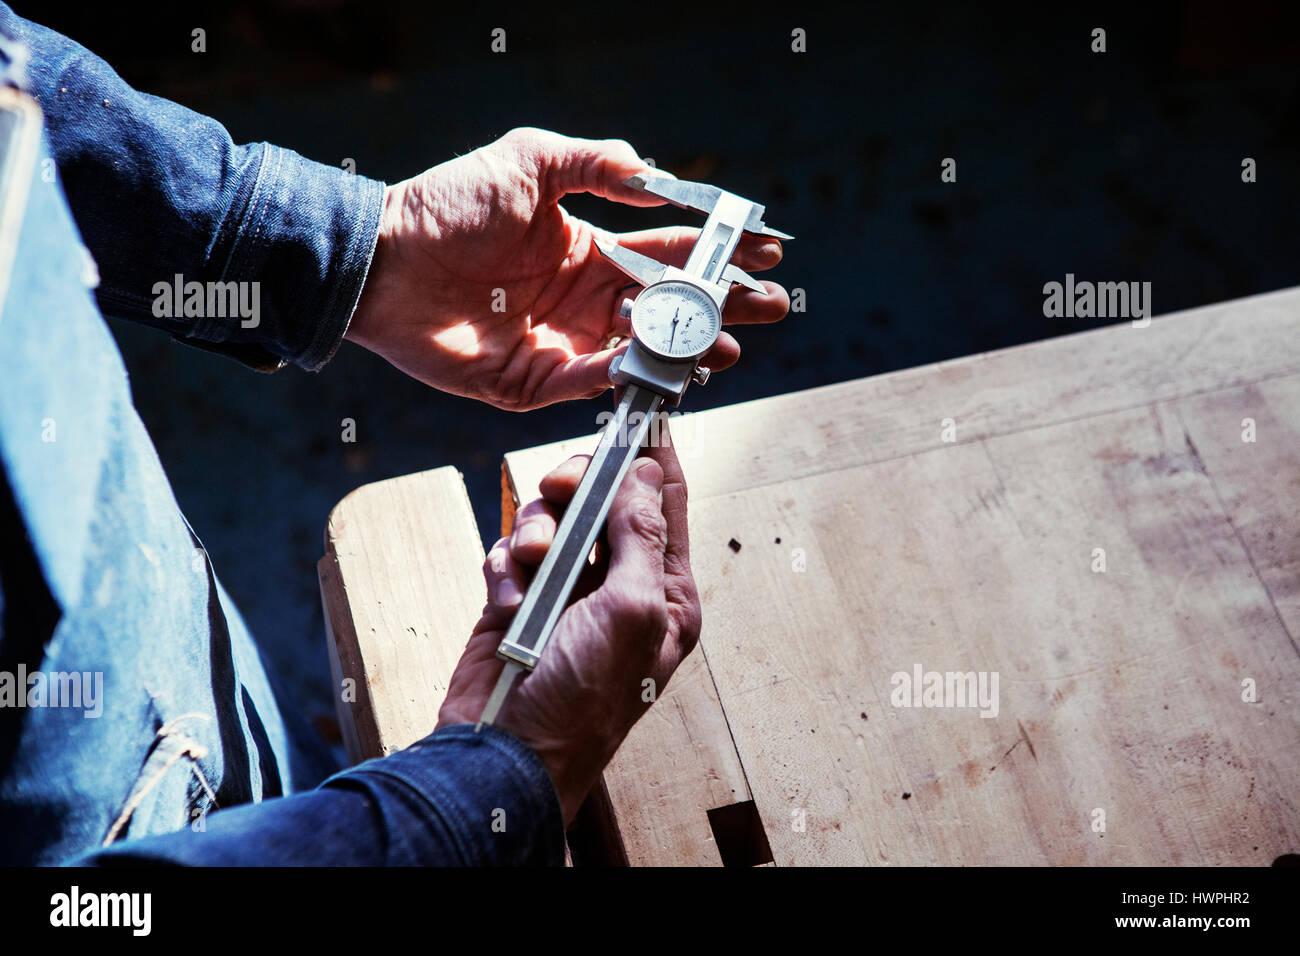 Midsection of carpenter holding vernier caliper at table in workshop - Stock Image